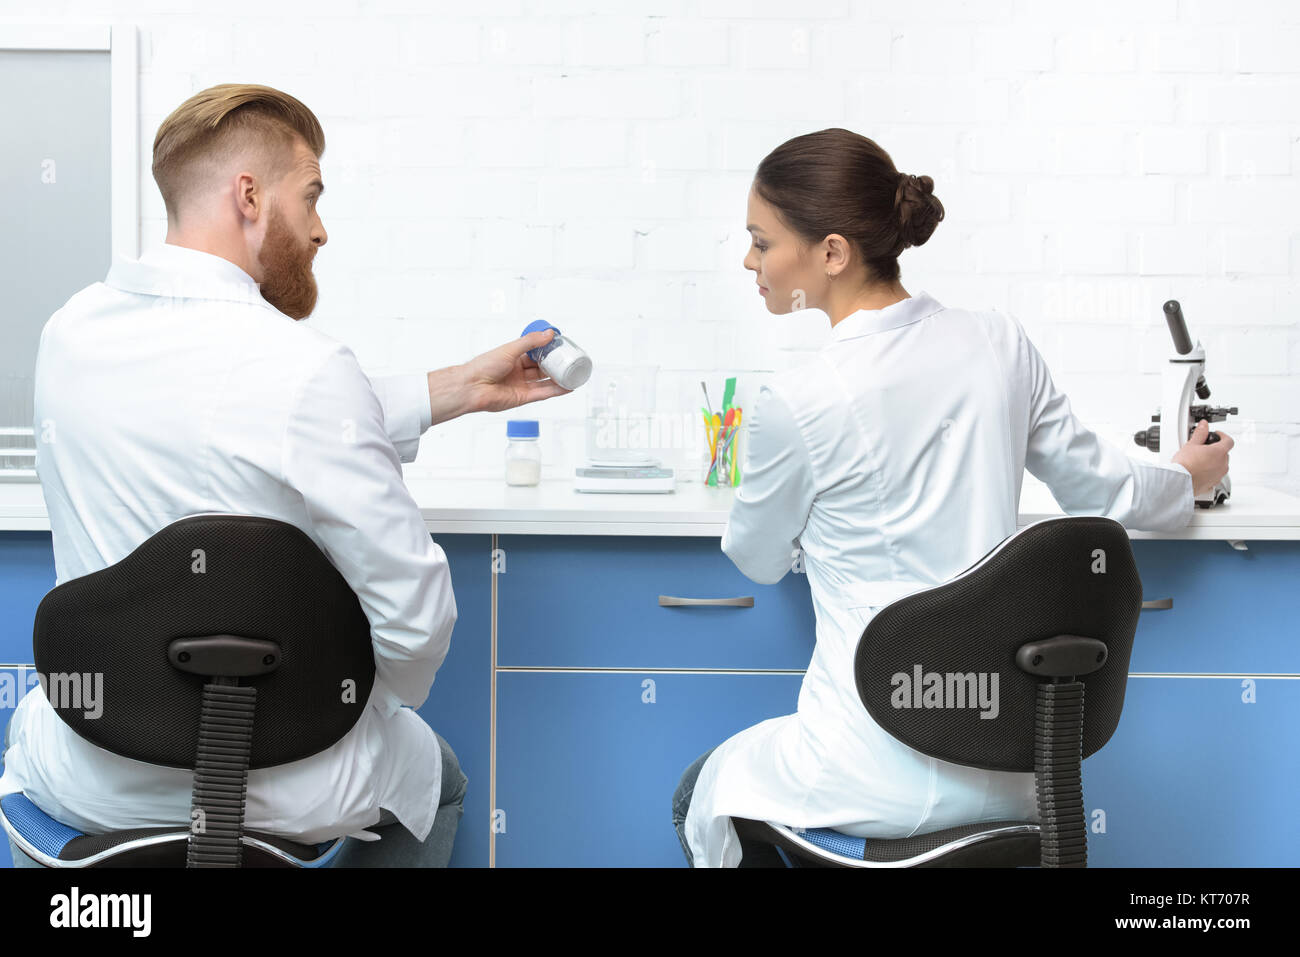 back view of scientists discussing analysis during work in lab - Stock Image